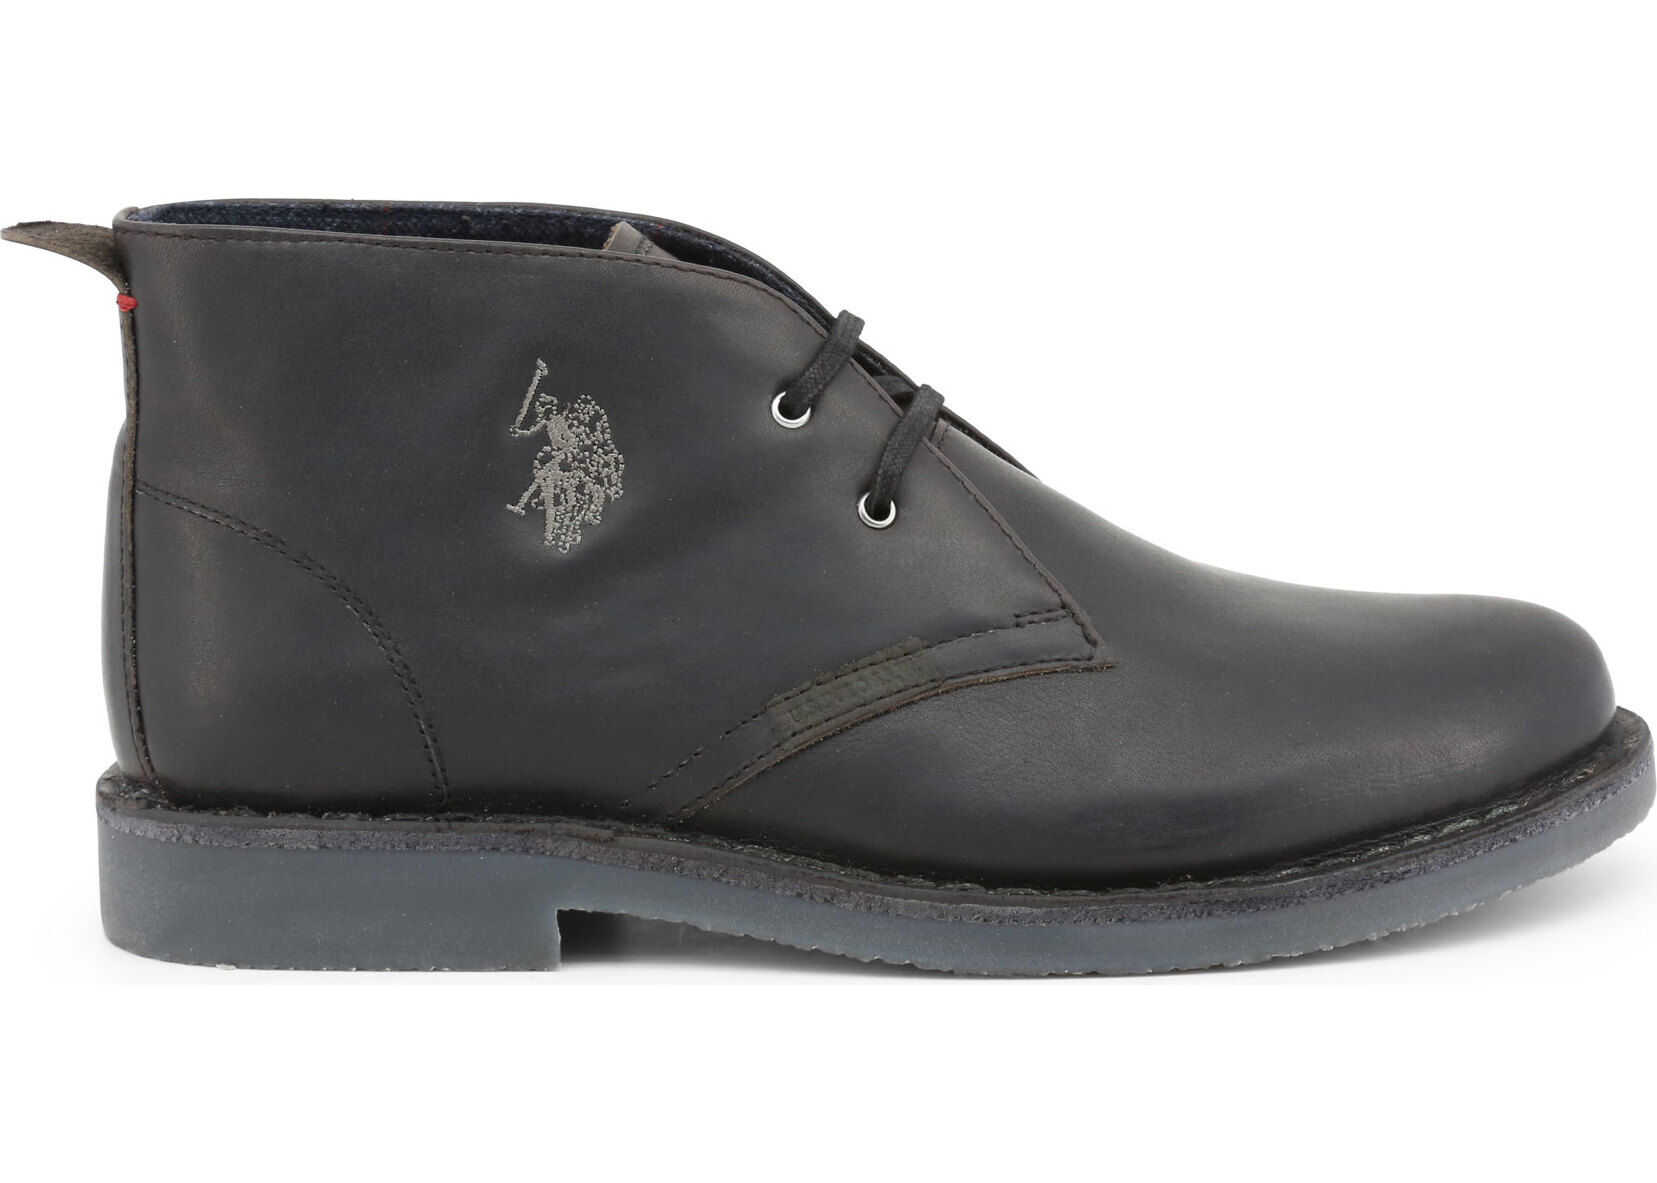 U.S. POLO ASSN. Must3119S4 Black